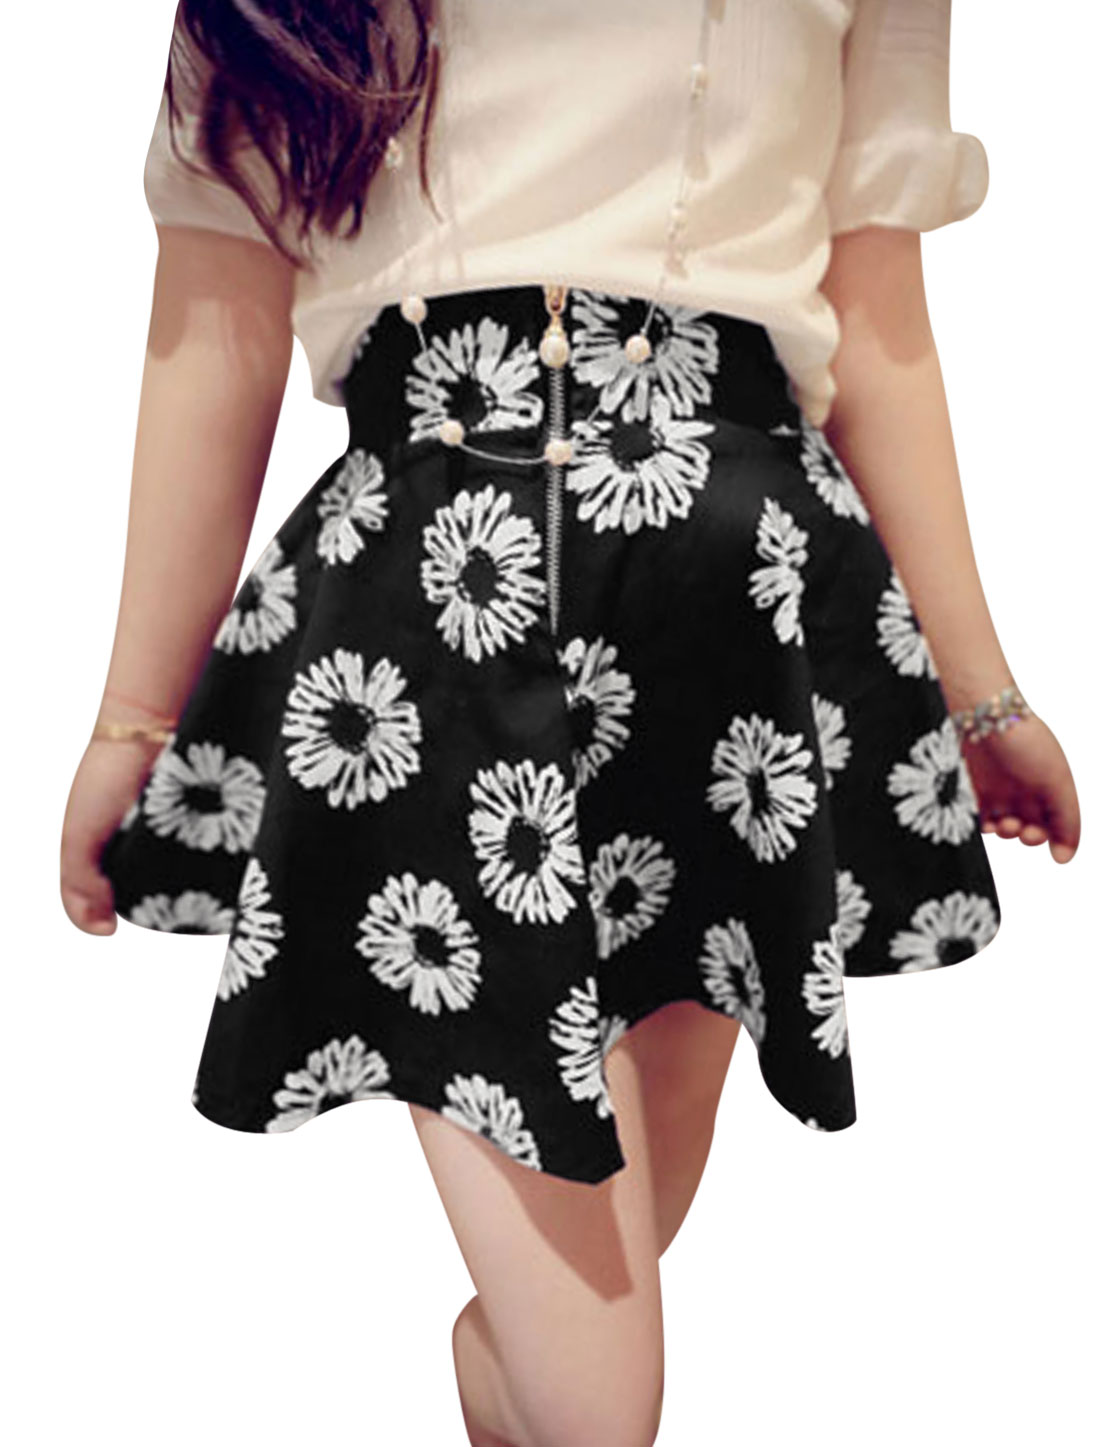 Women Summer Fit Zipper Front Sunflower Pattern Casual Skirt Black White S